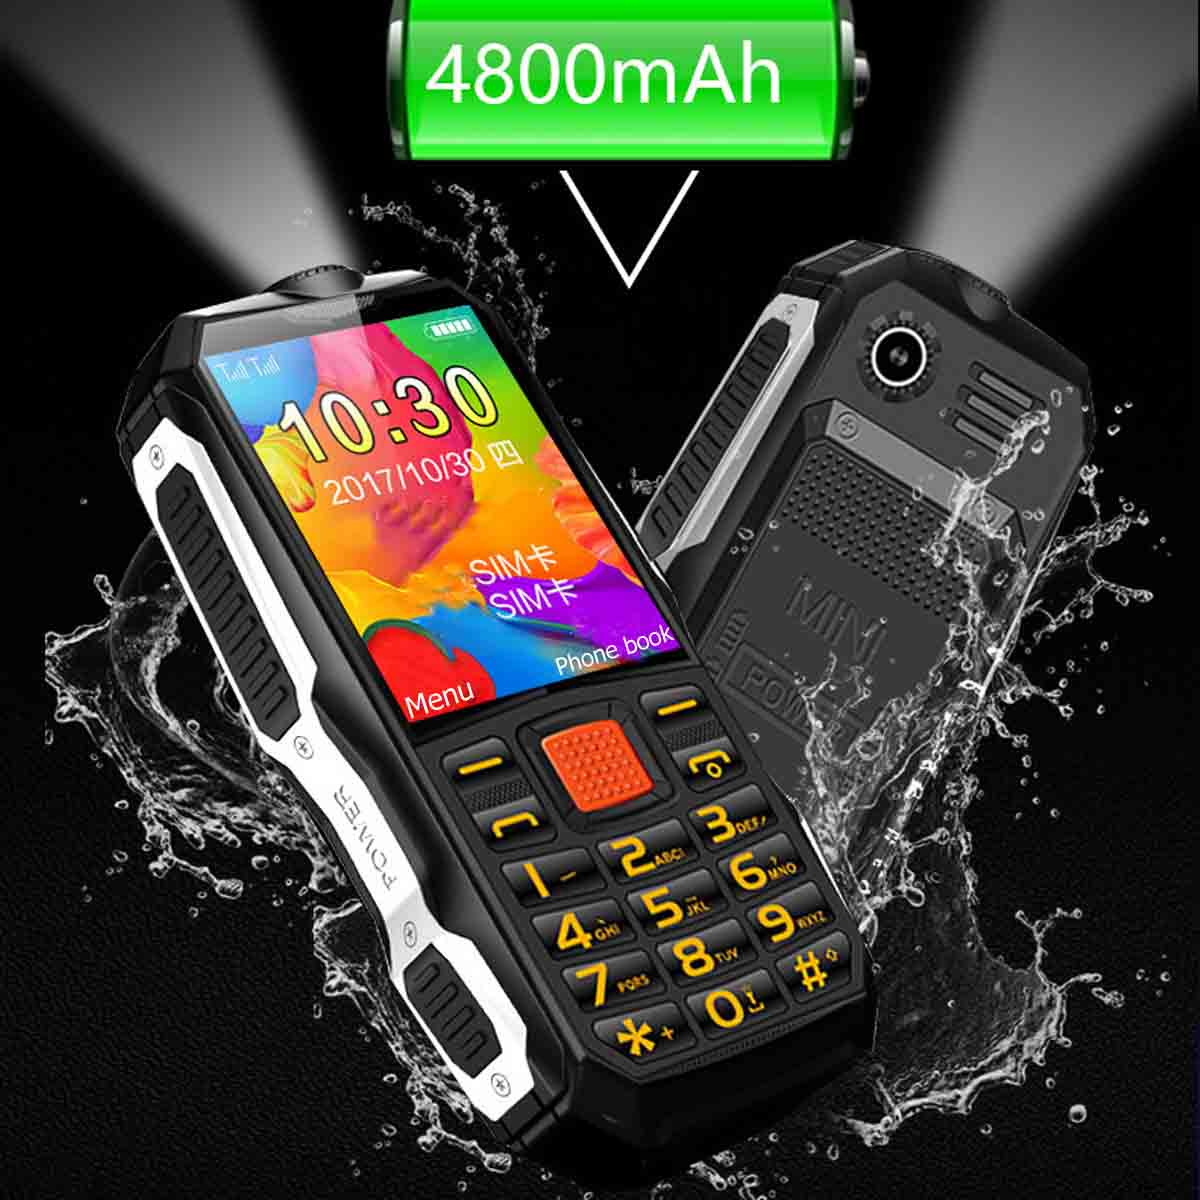 HAIYU-H1-20-Inch-4800mAh-Flashlight-FM-MP3-Power-Bank-Dual-SIM-Long-Standby-Mini-Feature-Phone-1424824-details-2 (1)